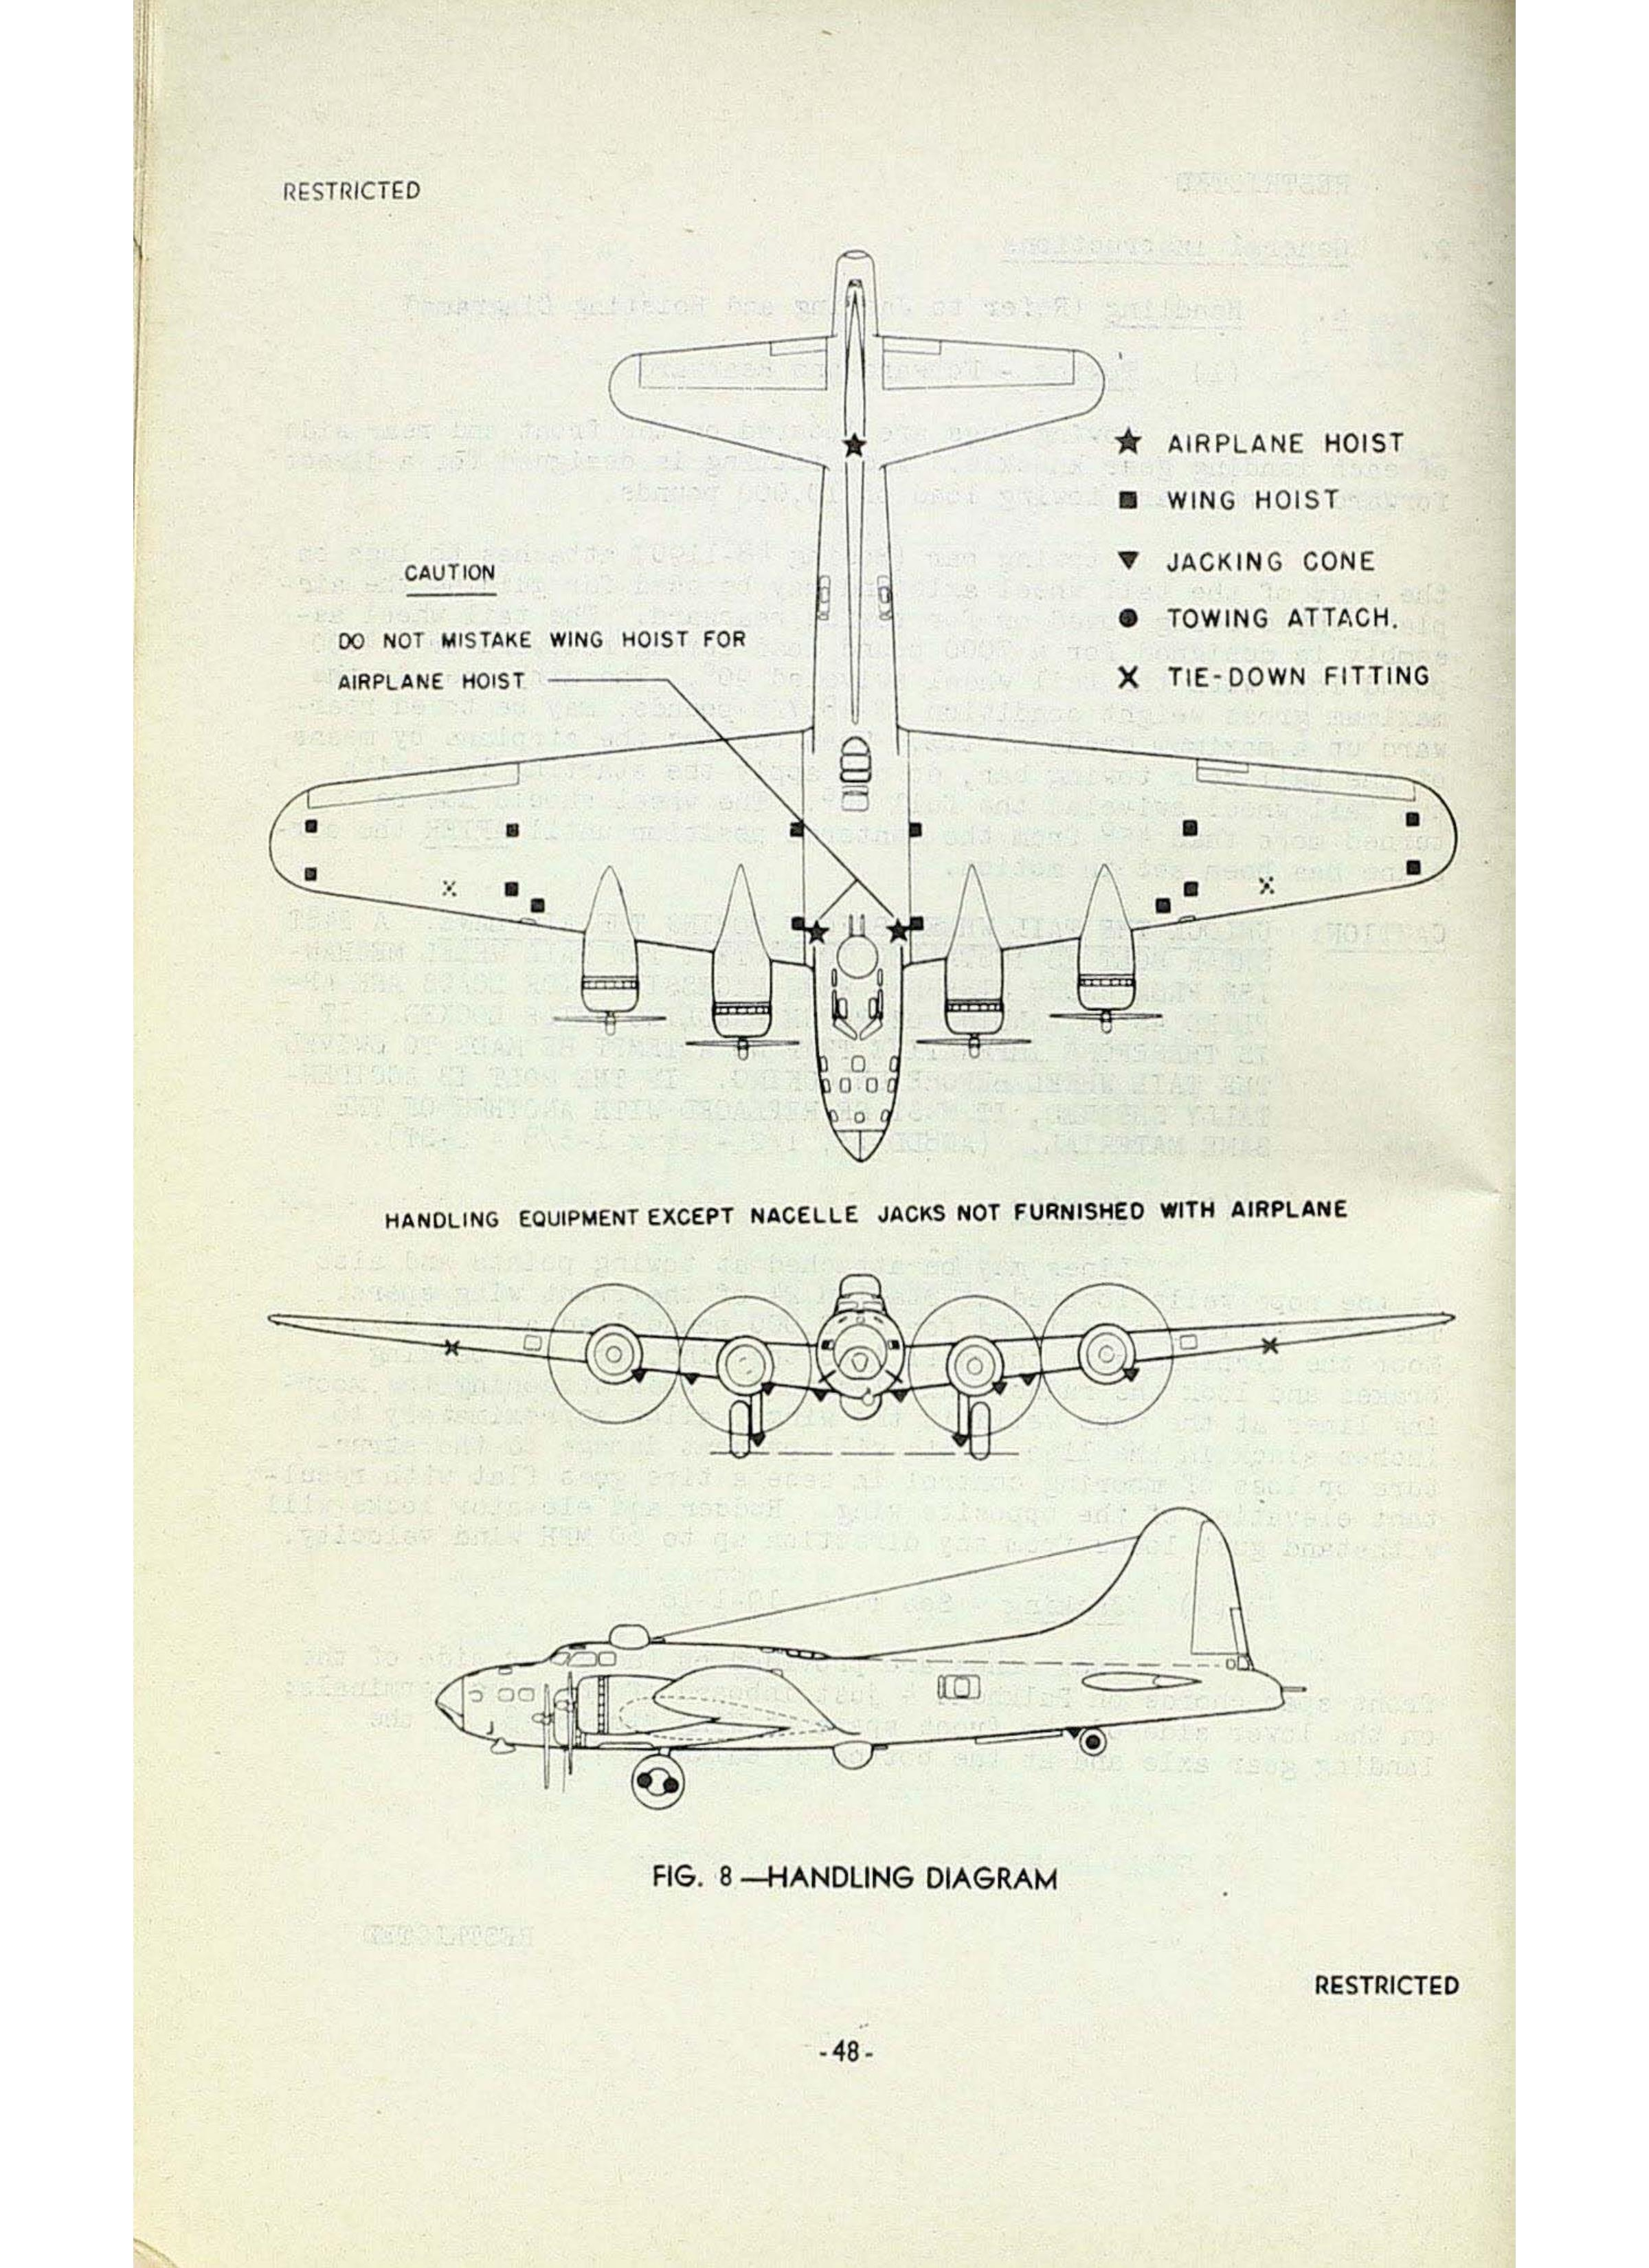 Sample page  48 from AirCorps Library document: Boeing B-17F Maintenance Familiarization Manual